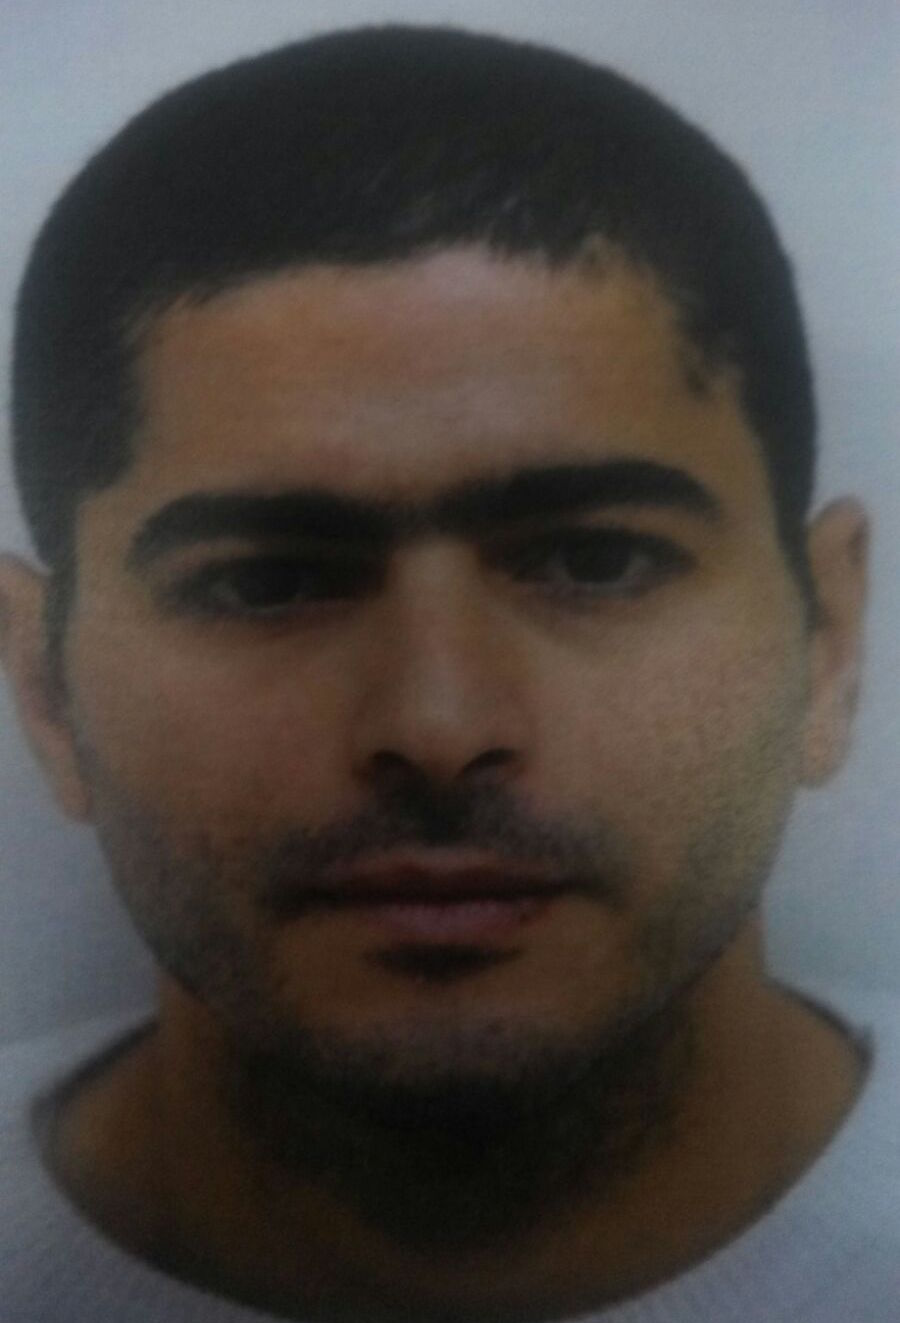 Nashat Milhem is accused of killing two people in central Tel Aviv on Friday. (Israel Police)